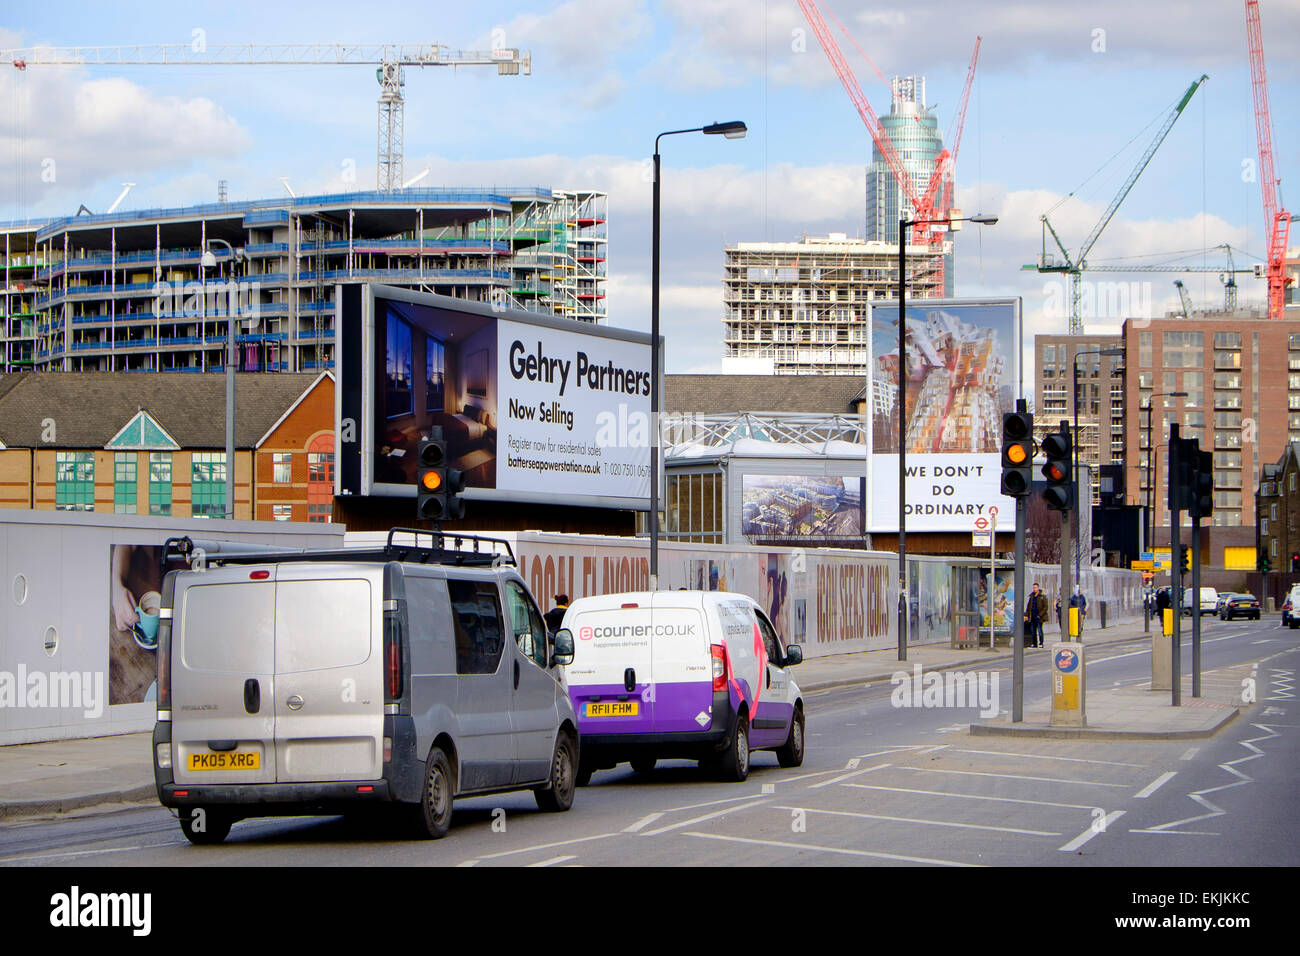 27 March 2015 - London: On Nine Elms Lane, roadside advertising by Gehry Partners for the Nine Elms development, - Stock Image